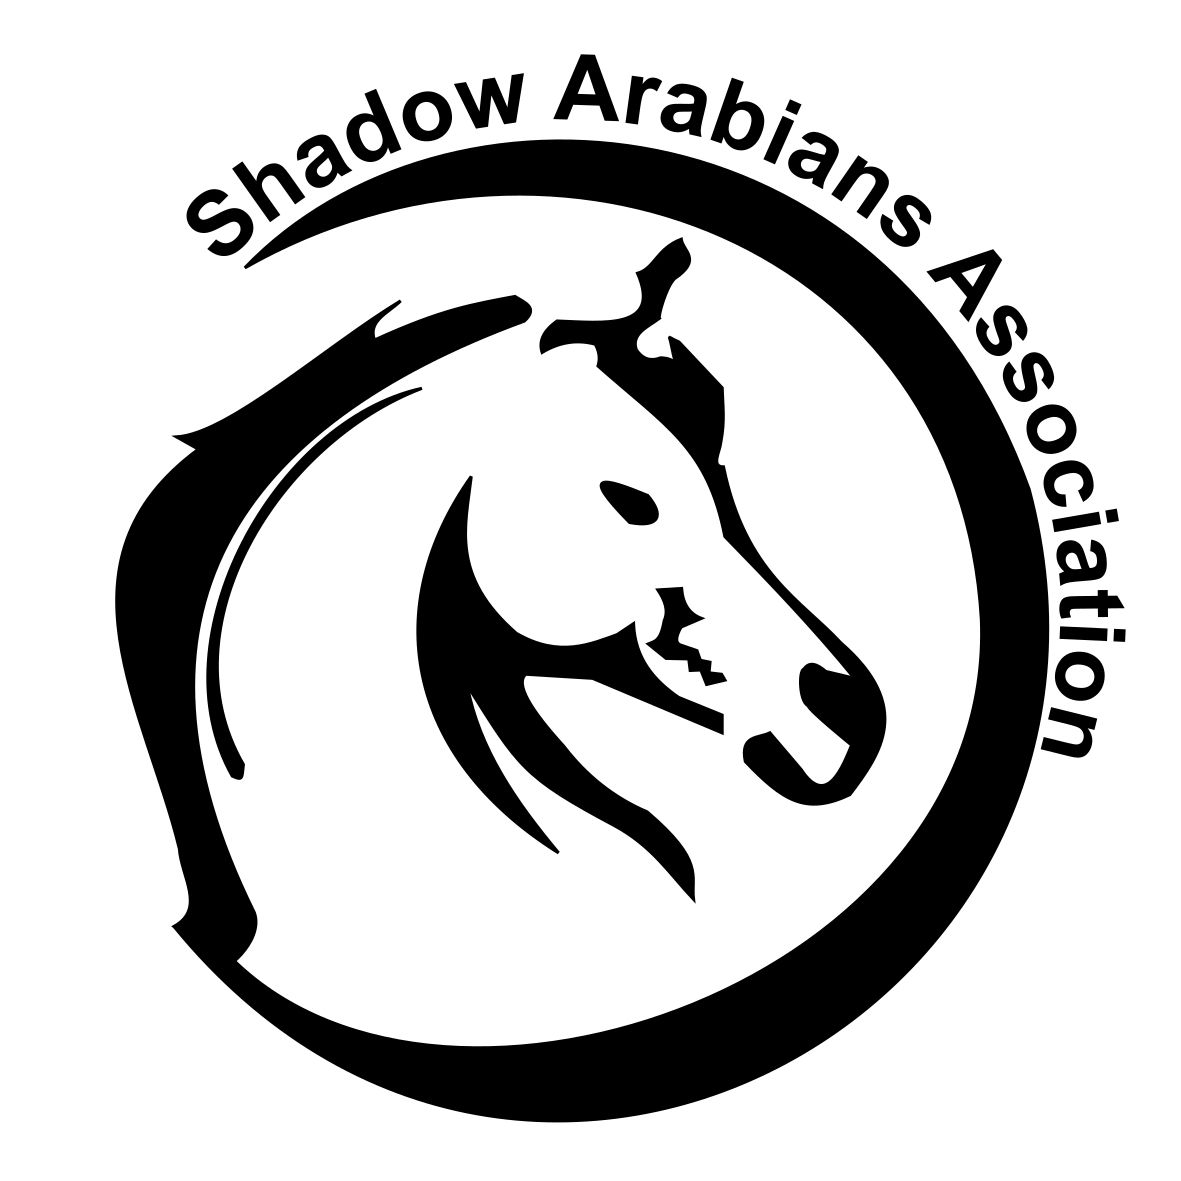 EL SHADOW ARABIANS COURSES D'ENDURANCE EQUESTRE